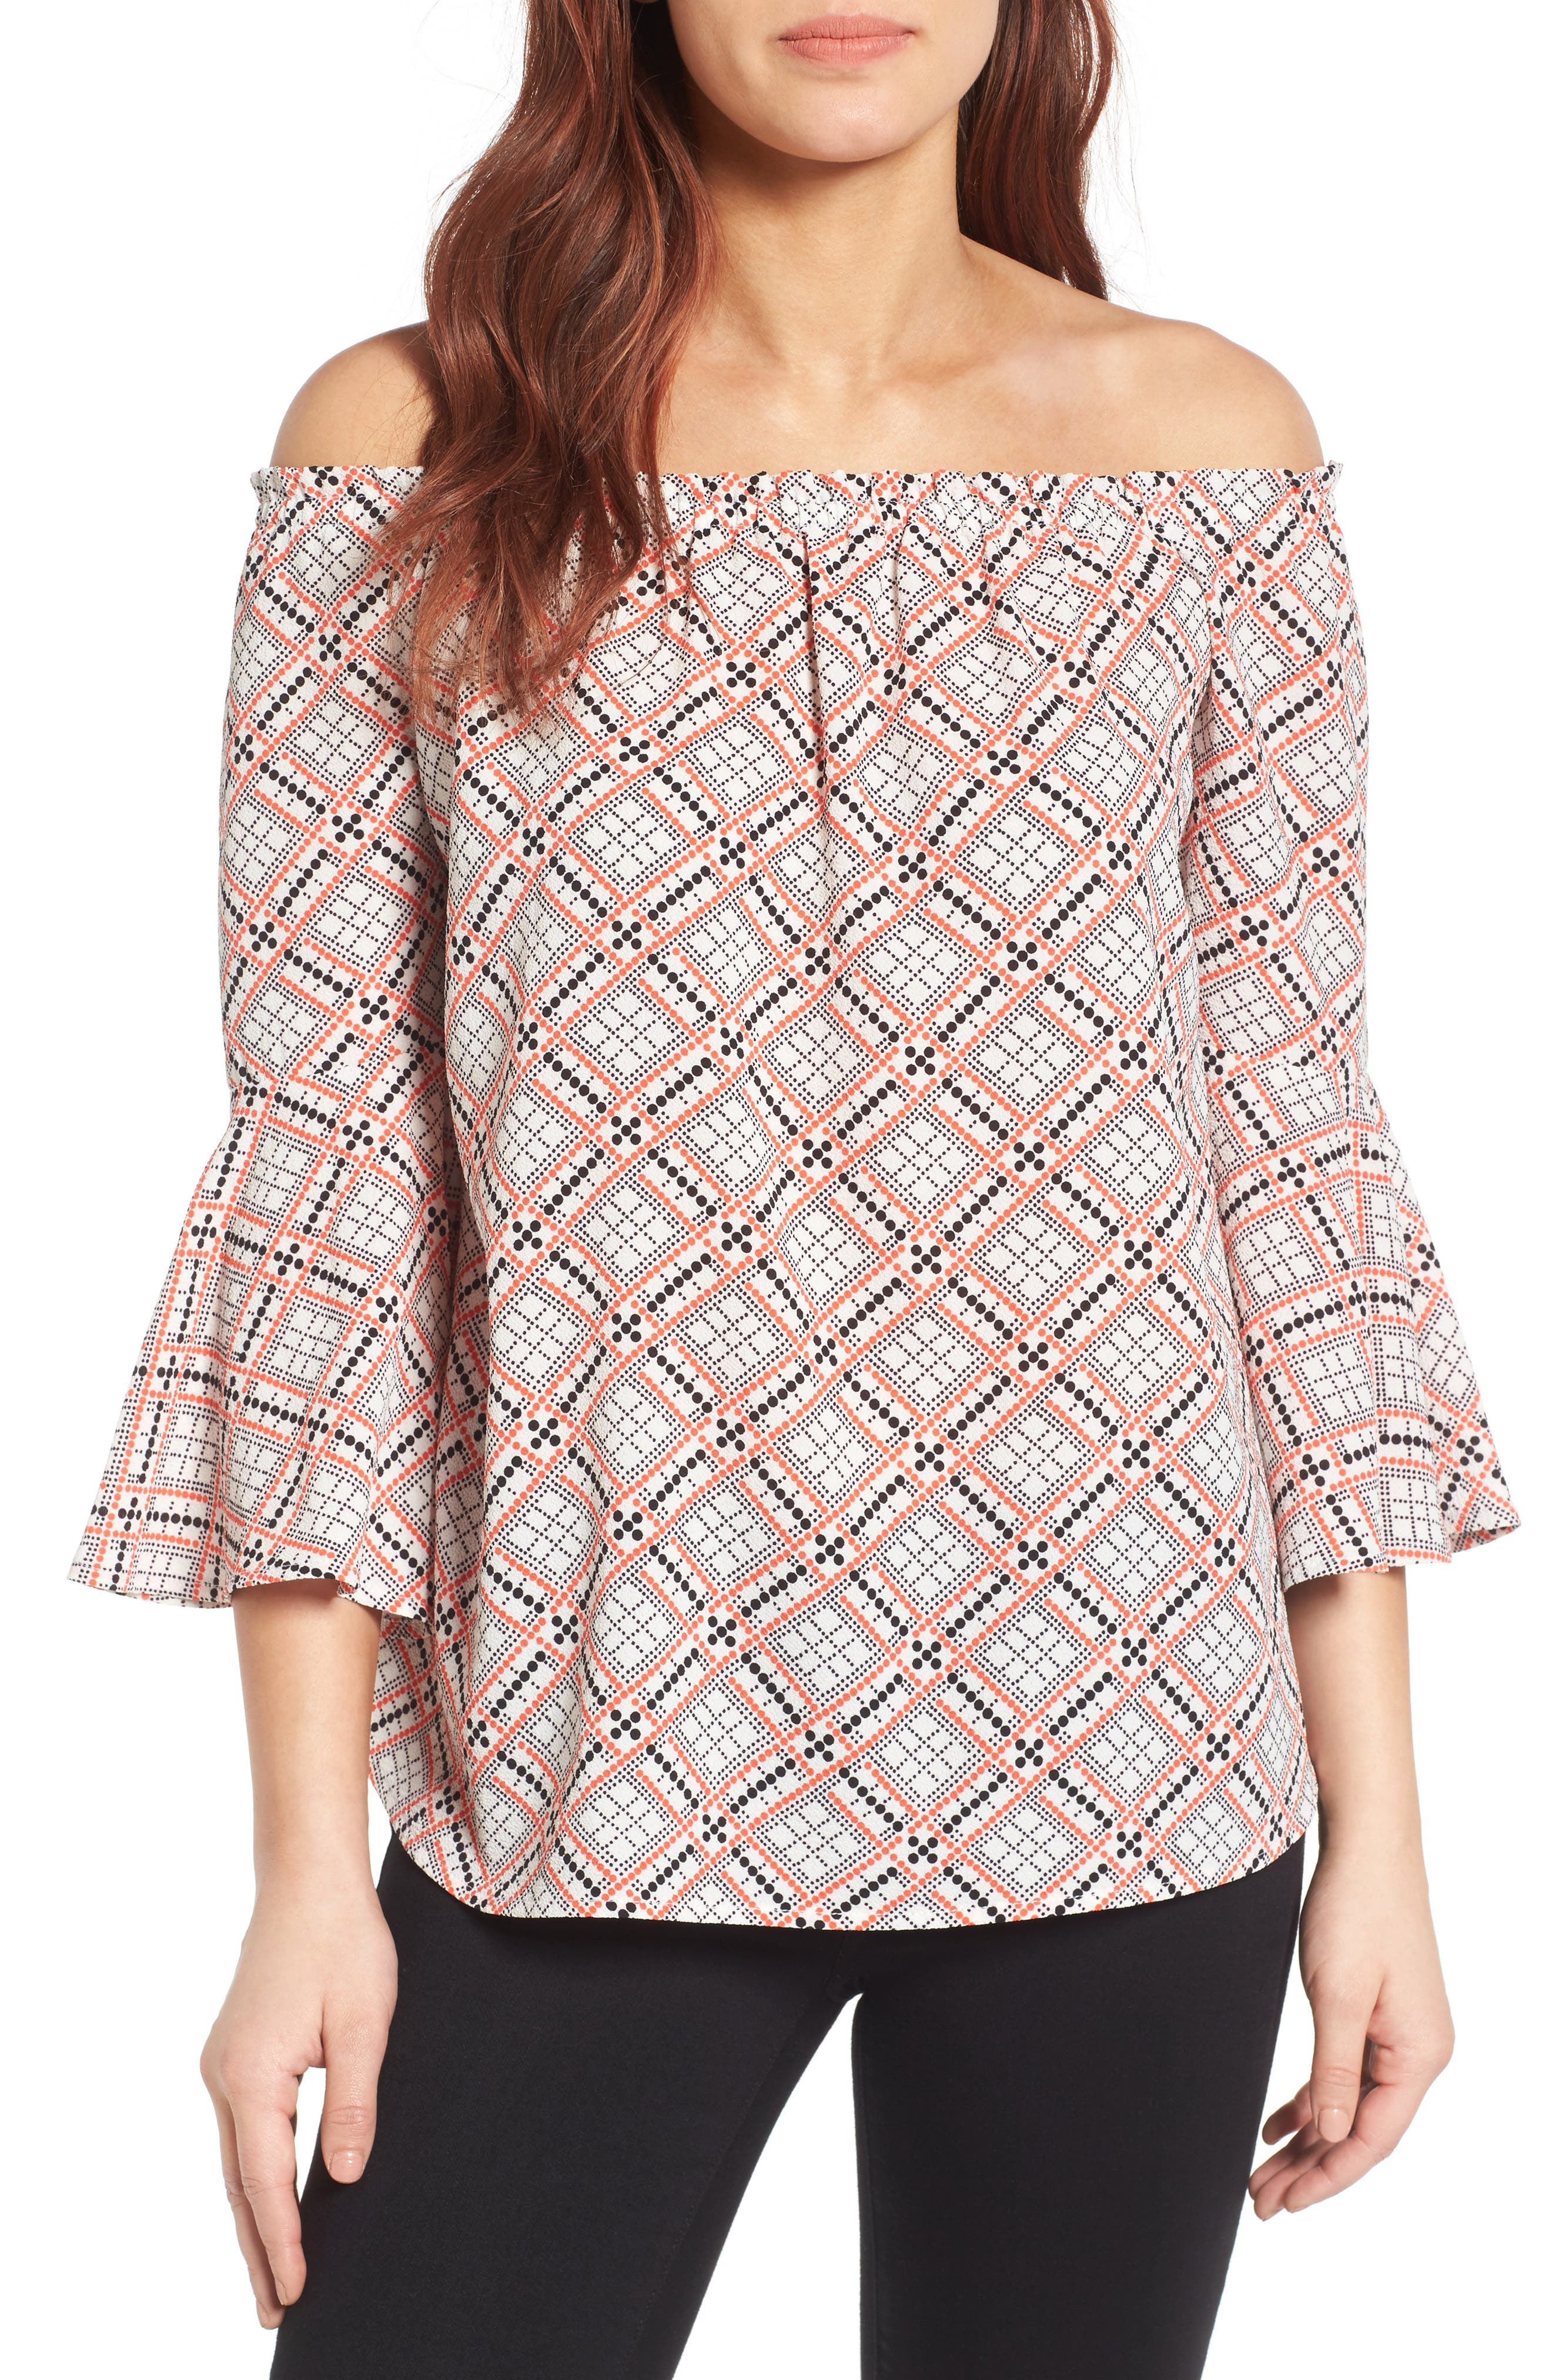 Bell Sleeve Off the Shoulder Blouse,                             Main thumbnail 1, color,                             115